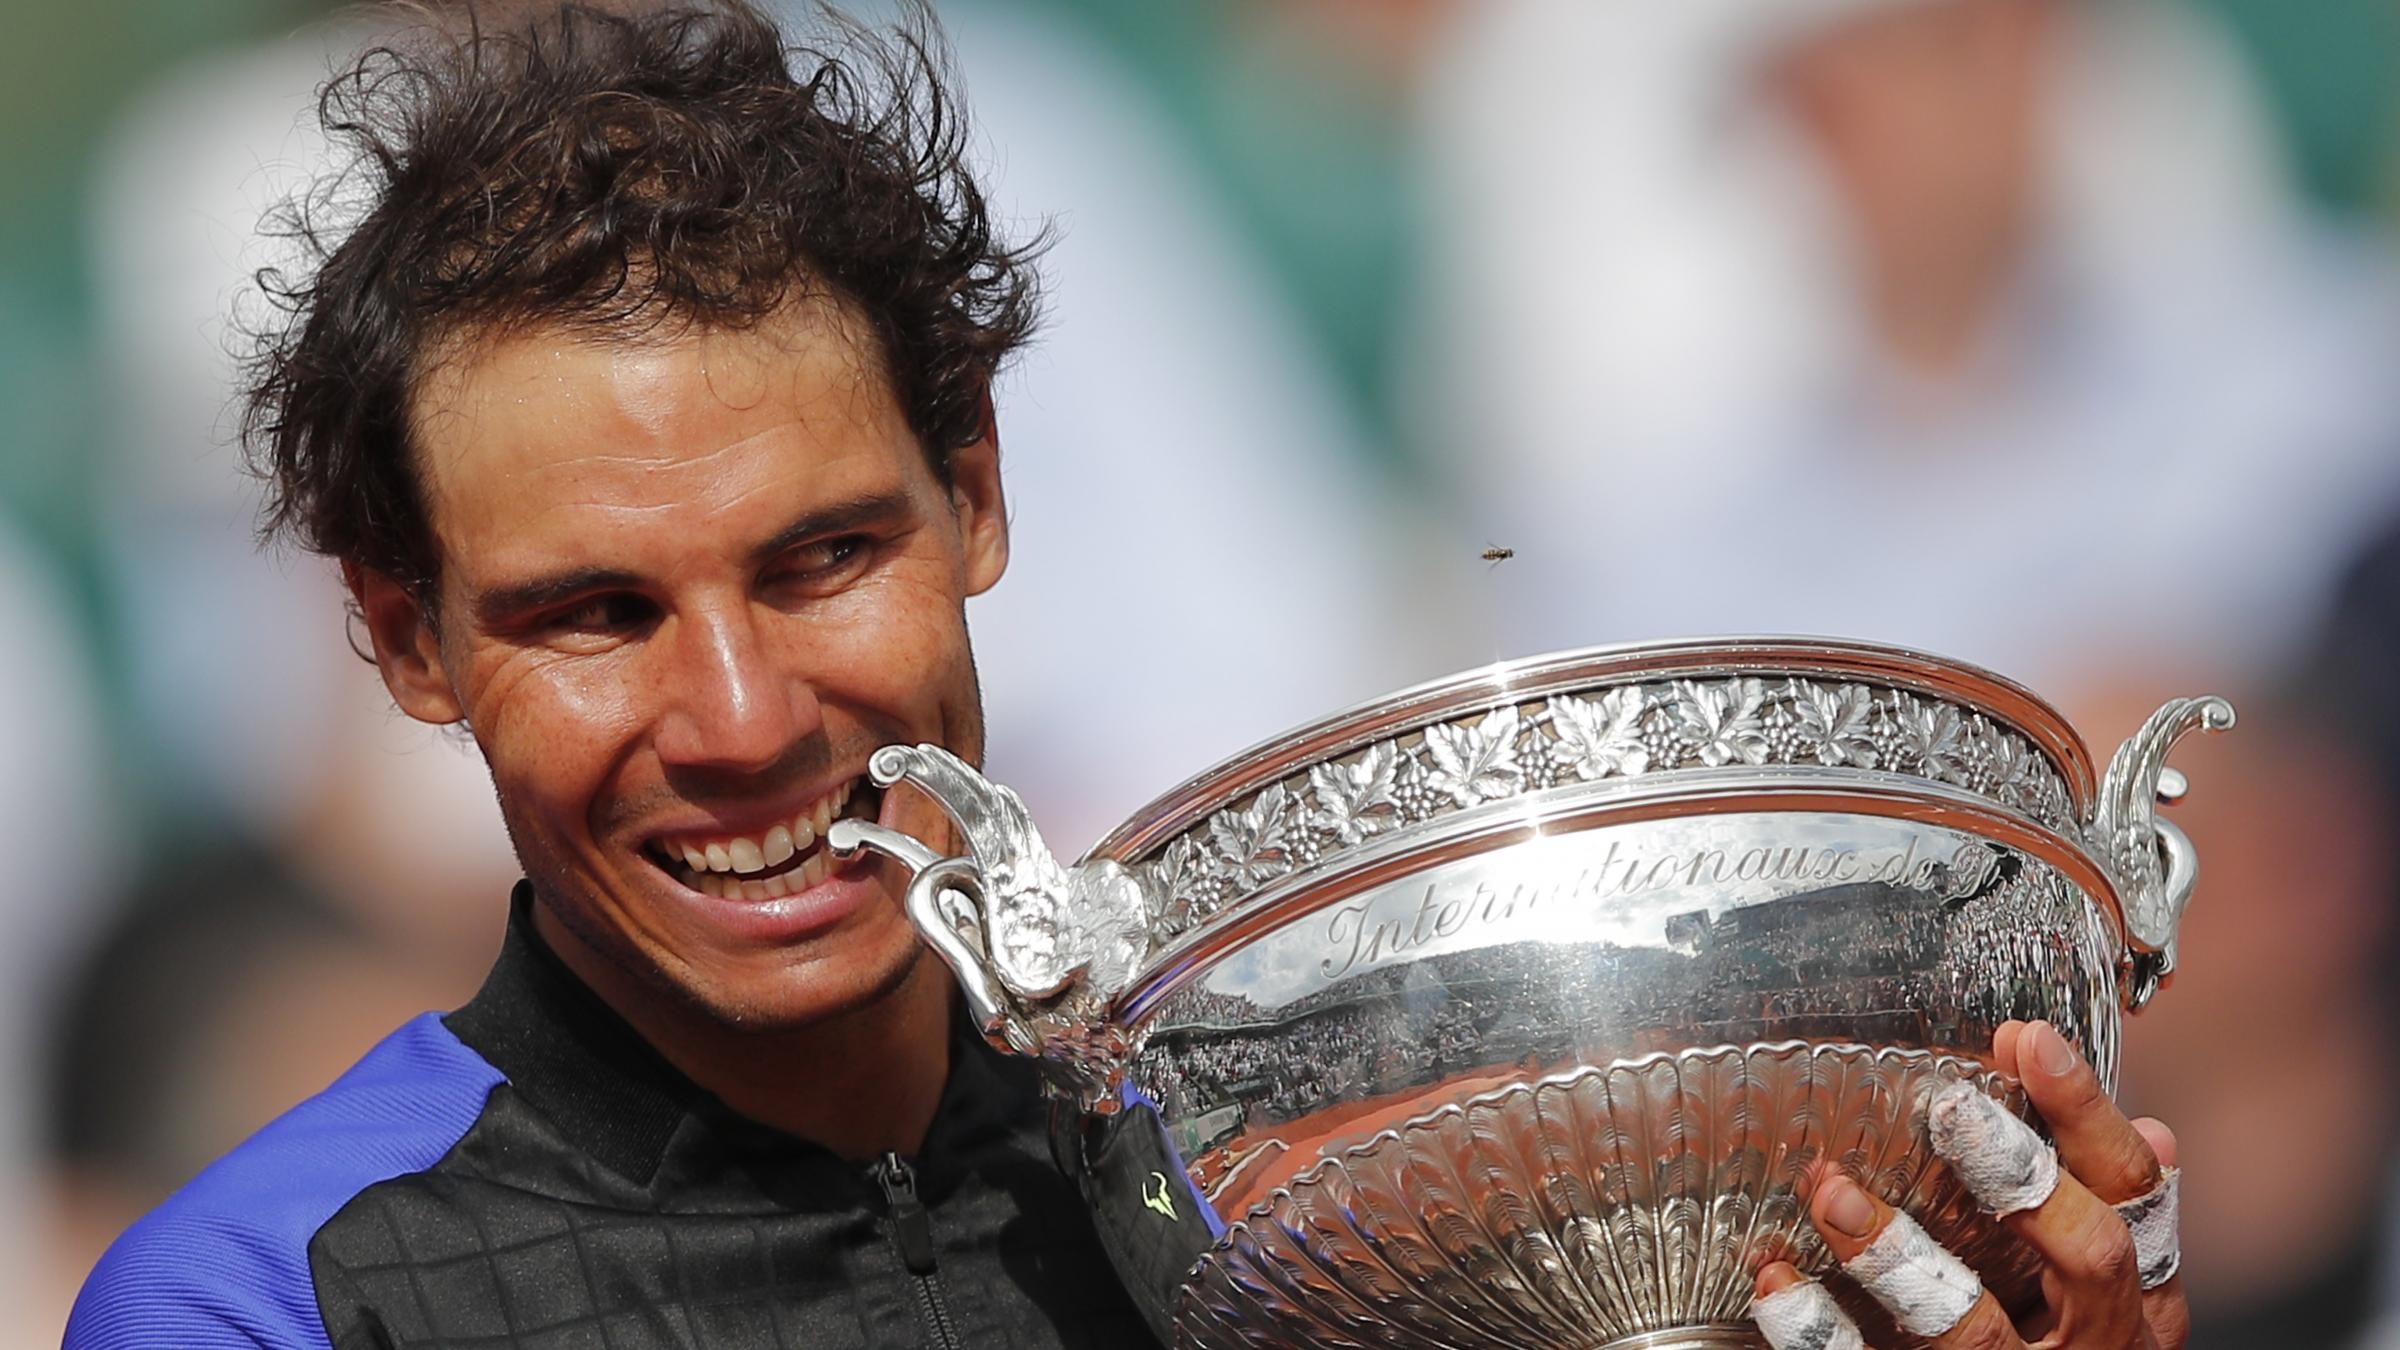 Rafael Nadal : Player eyes 10th French Open with injury misery in mind